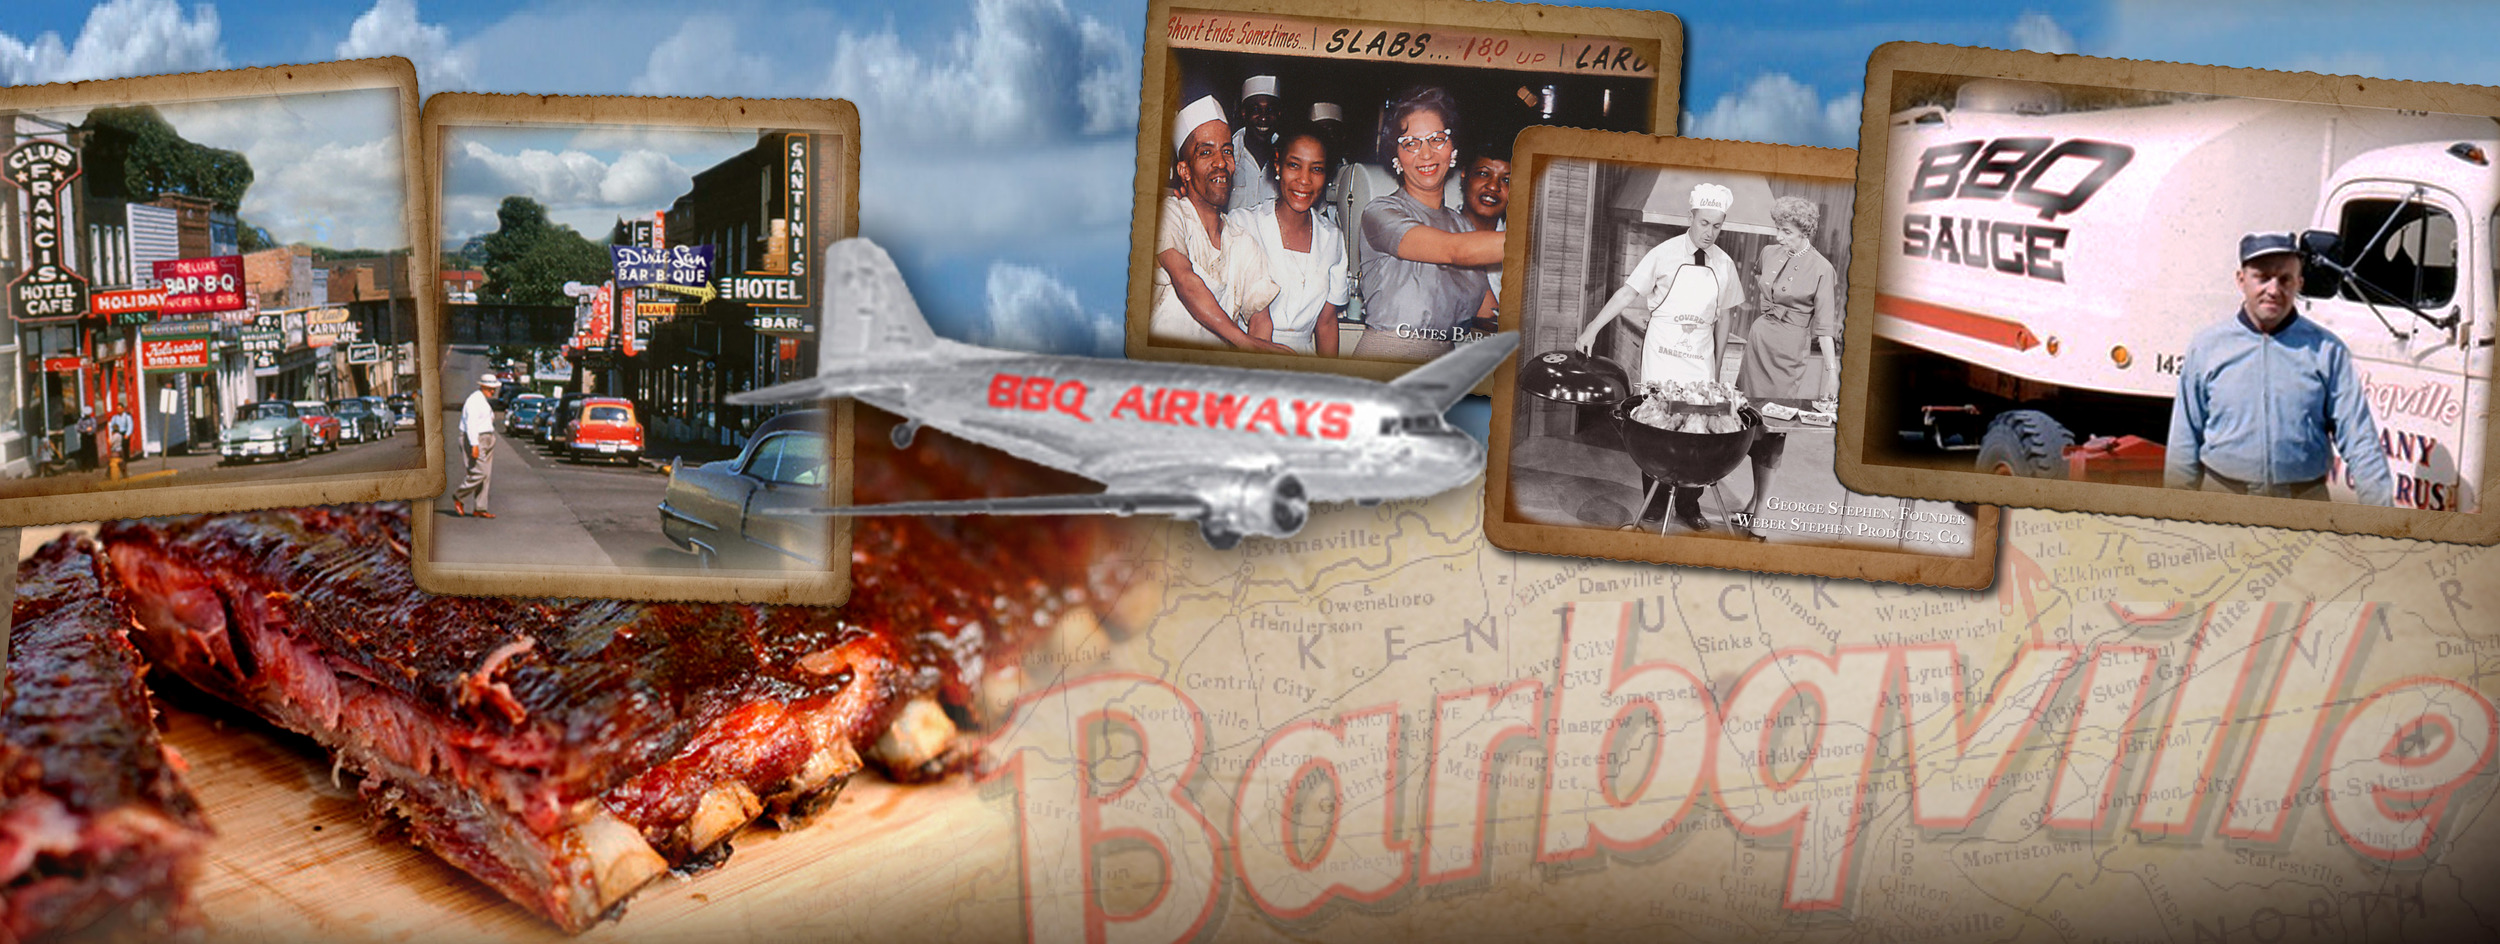 Barbqville.com  is an e-commerce website with 20,000 customers/subscribers. Shoppers select products ranging from grills, smokers, and gourmet items and purchase them from retailers paying Barbqville.com sales commissions. BBQ enthusiasts also enjoy articles and links related to recipes and event information.